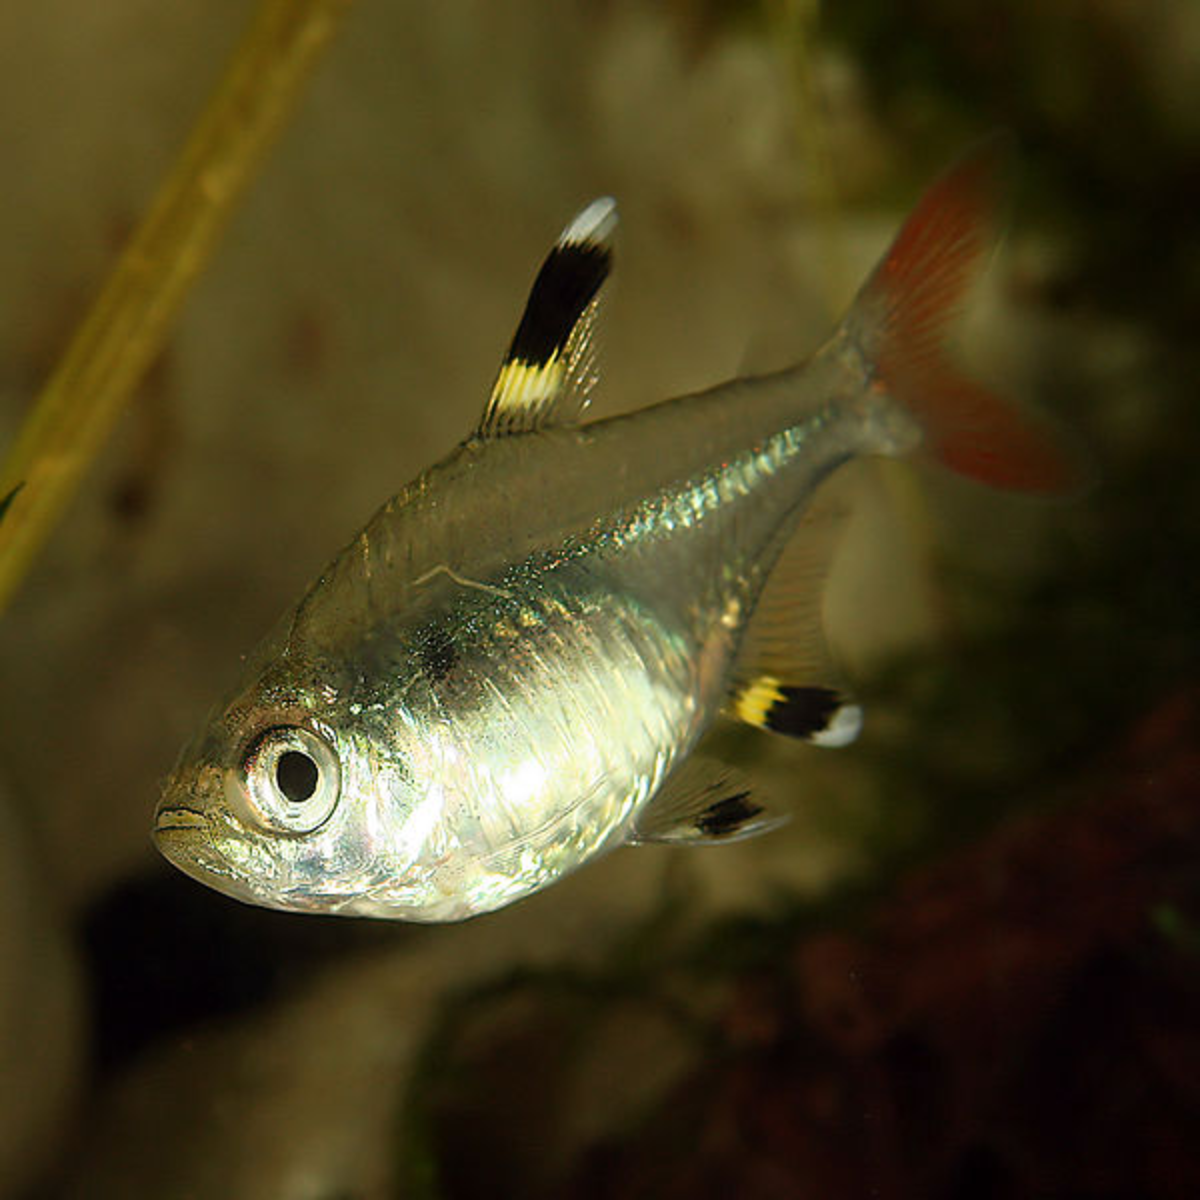 X-ray Tetra is a chordata.